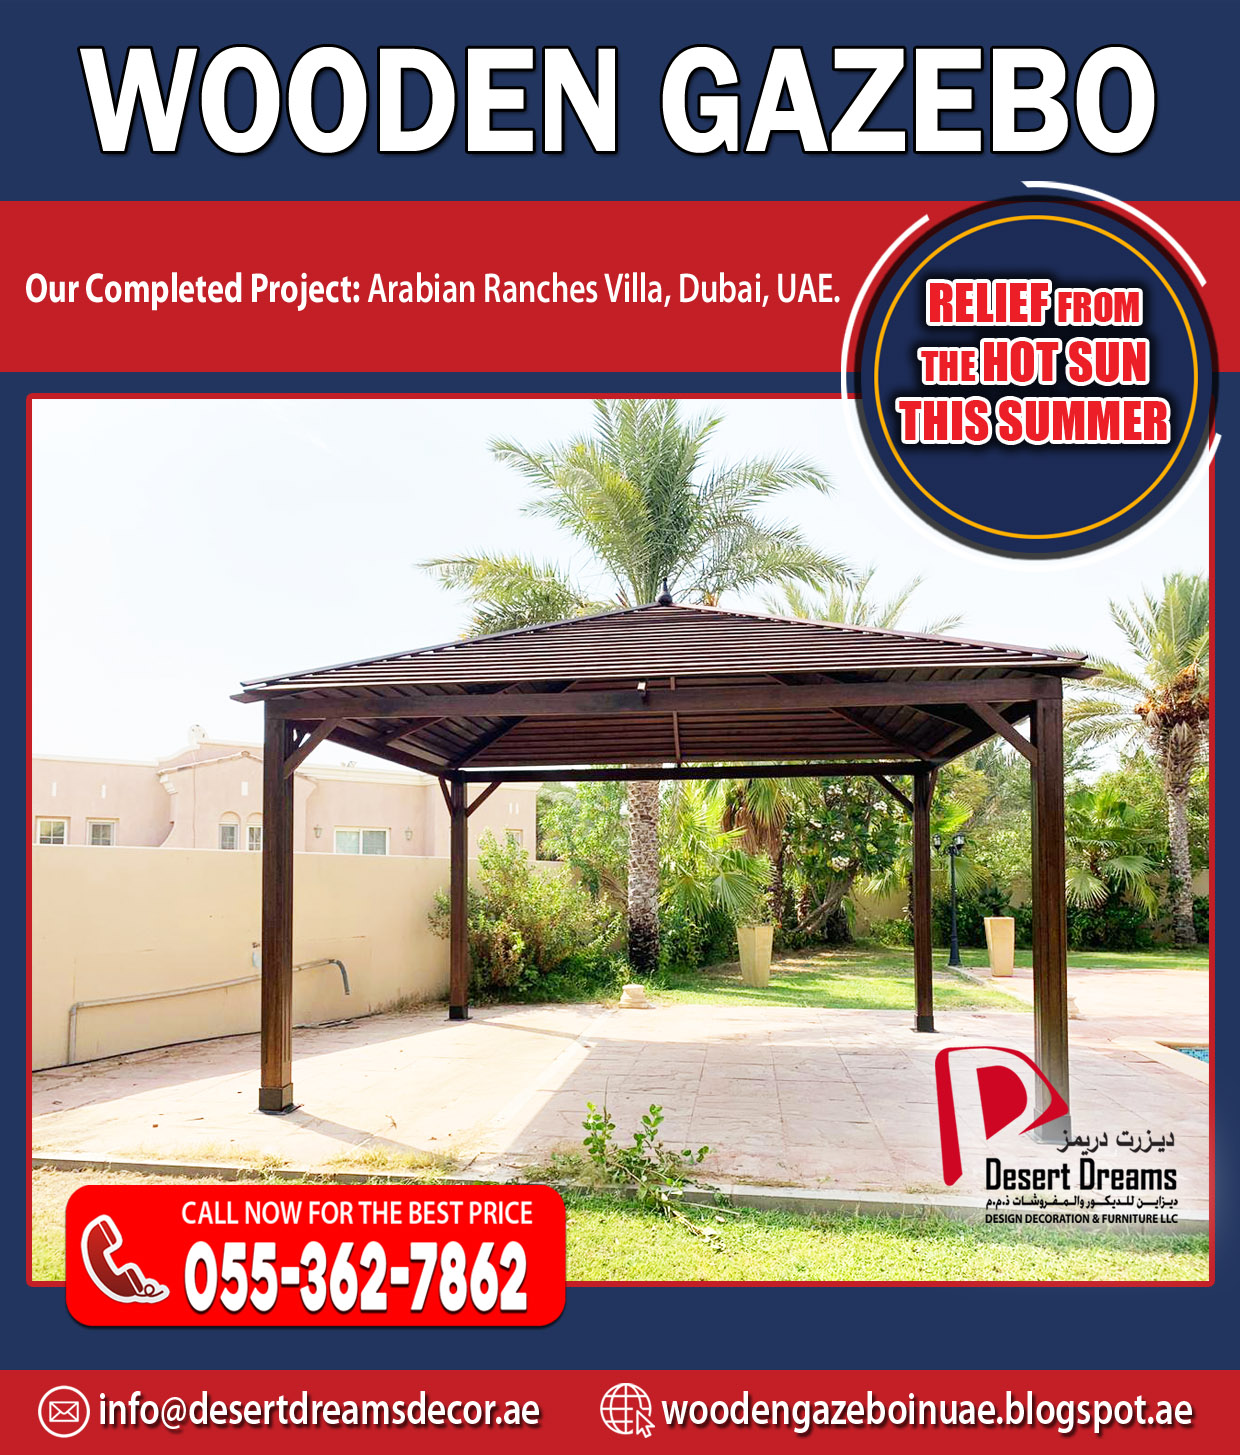 Wooden Gazebo in Dubai, UAE-2.jpg